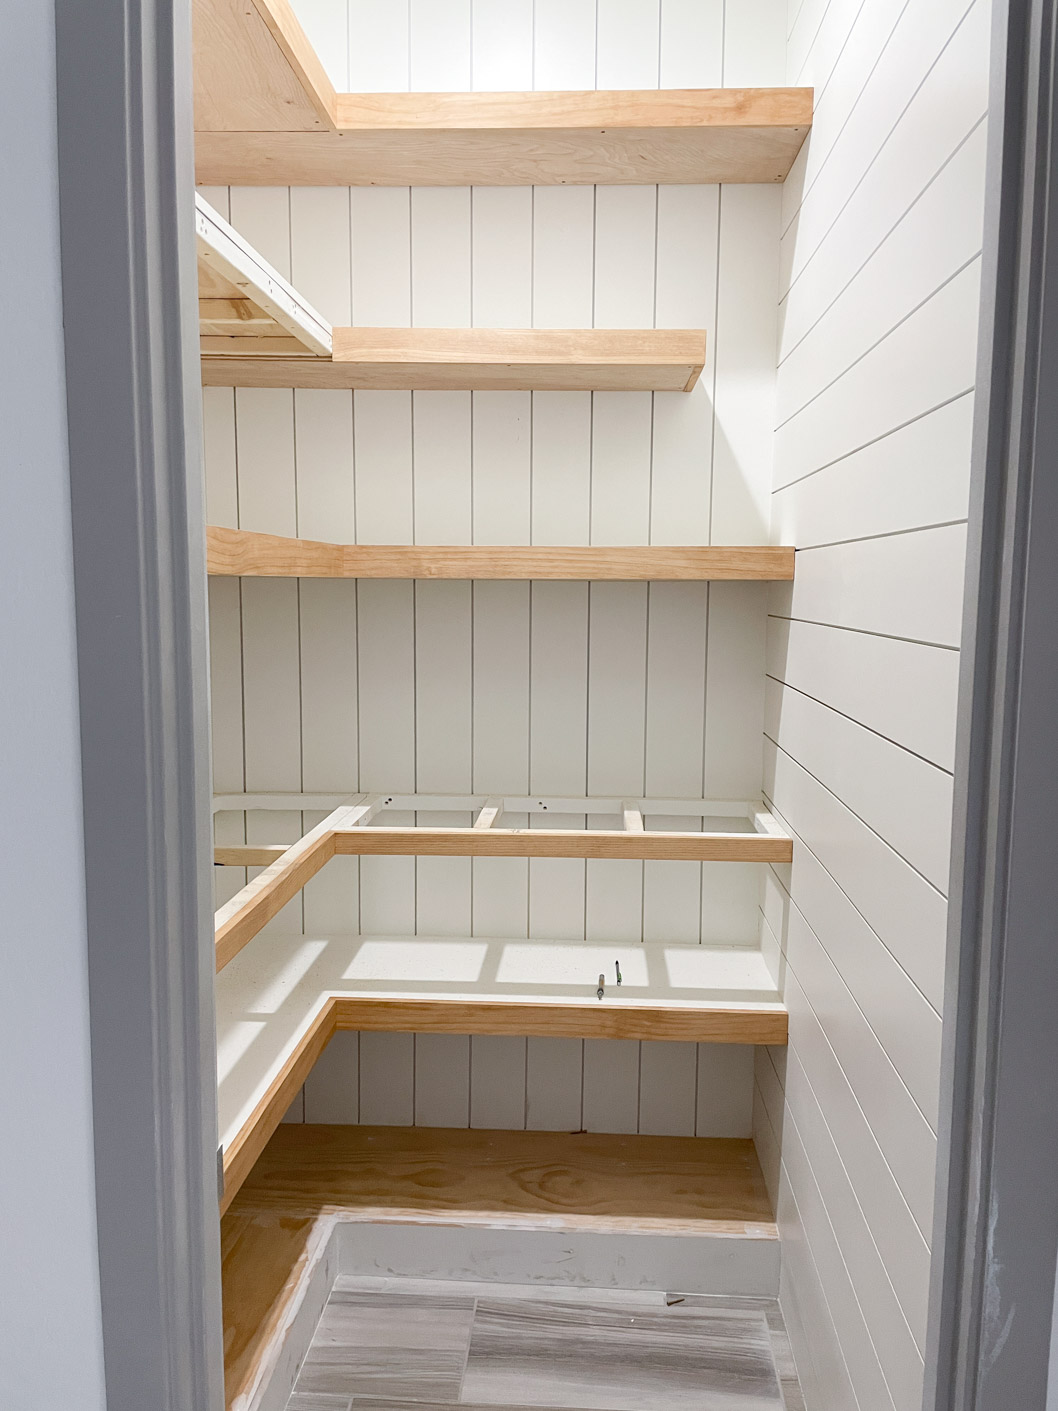 a picture showing white shiplap walls and brown shelves